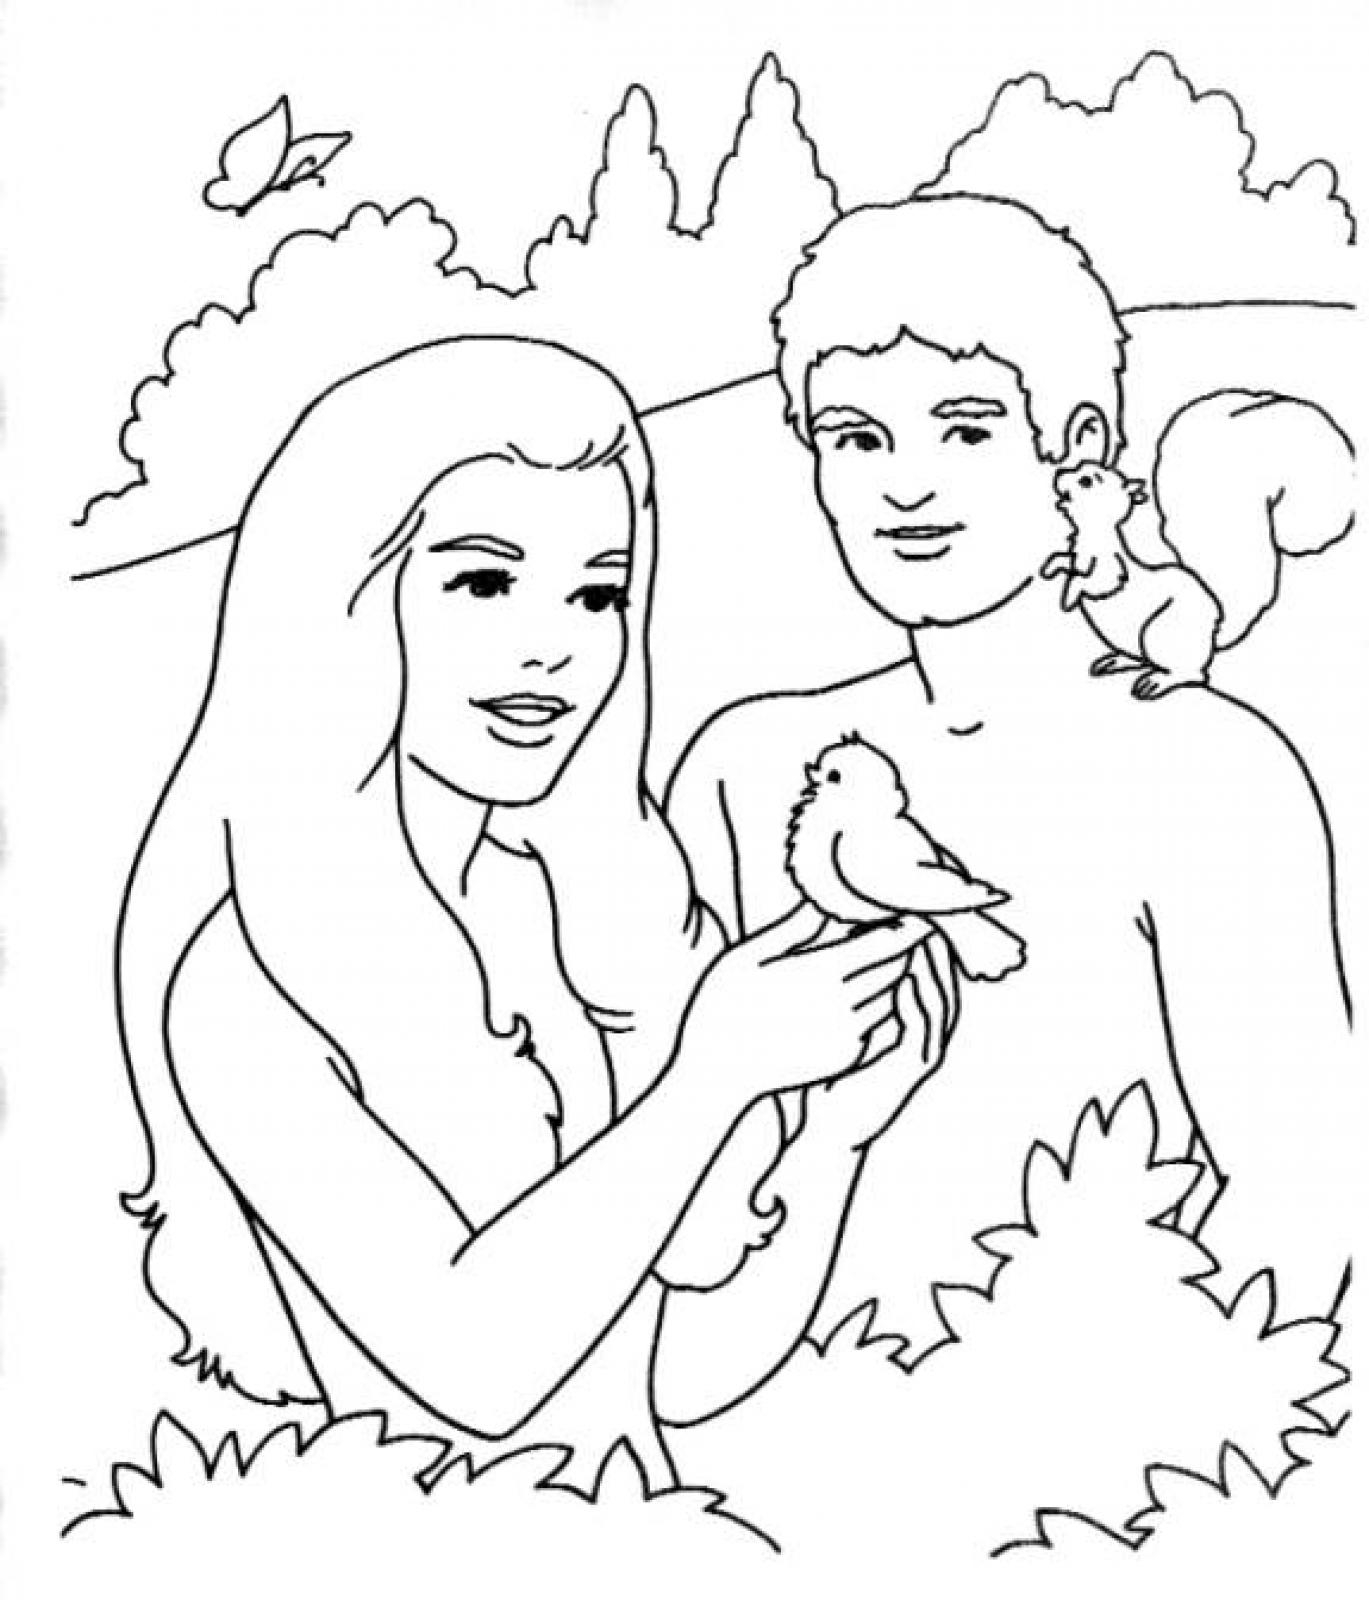 Free Printable Adam and Eve Coloring Pages for Kids Best Coloring Gallery Of And Eve Coloring Pages Coloring Pages Download